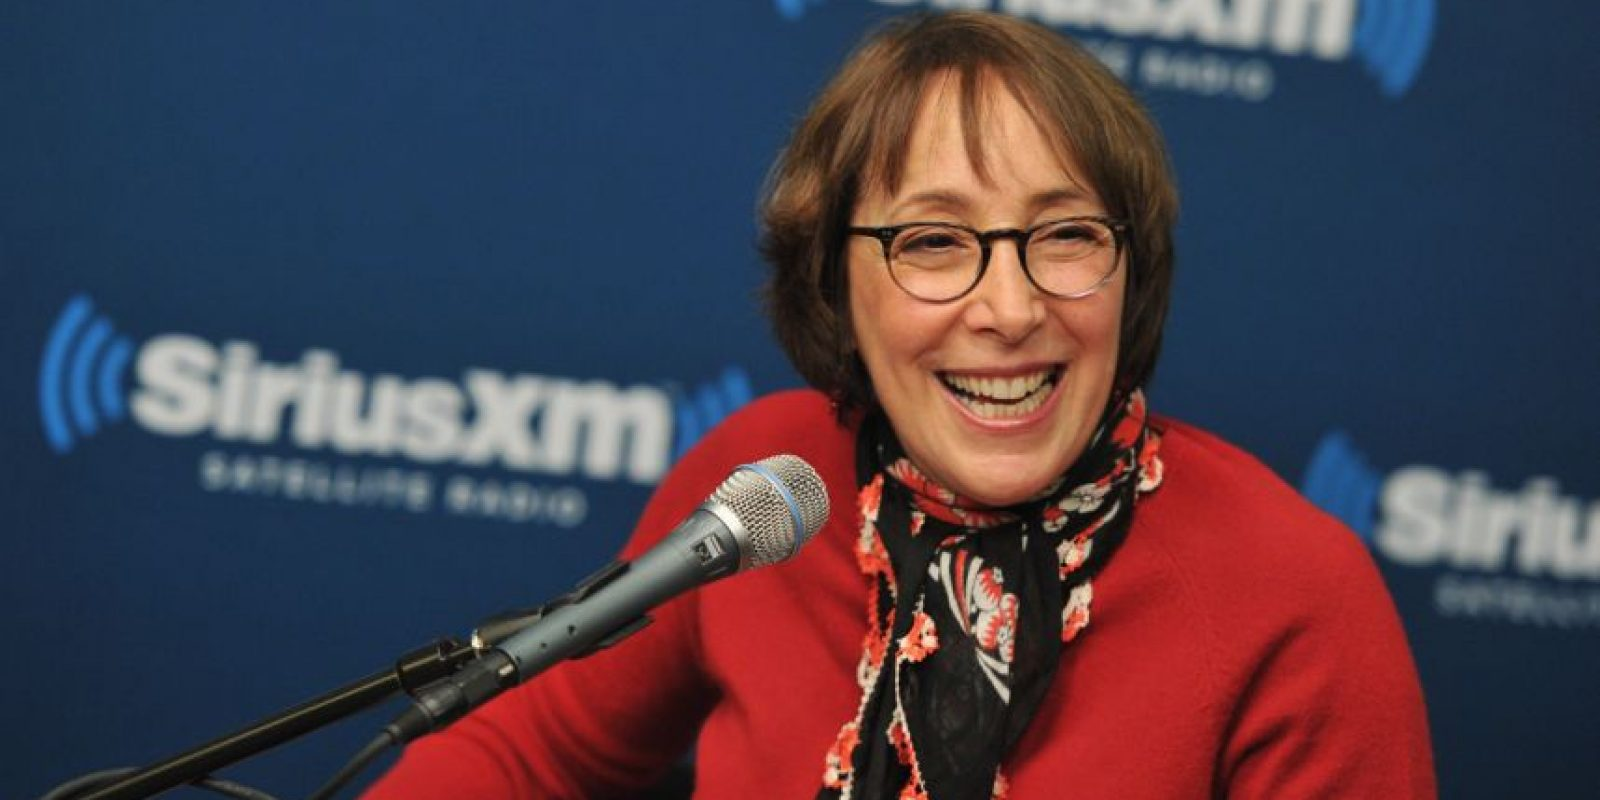 Didi Conn Foto: Getty Images